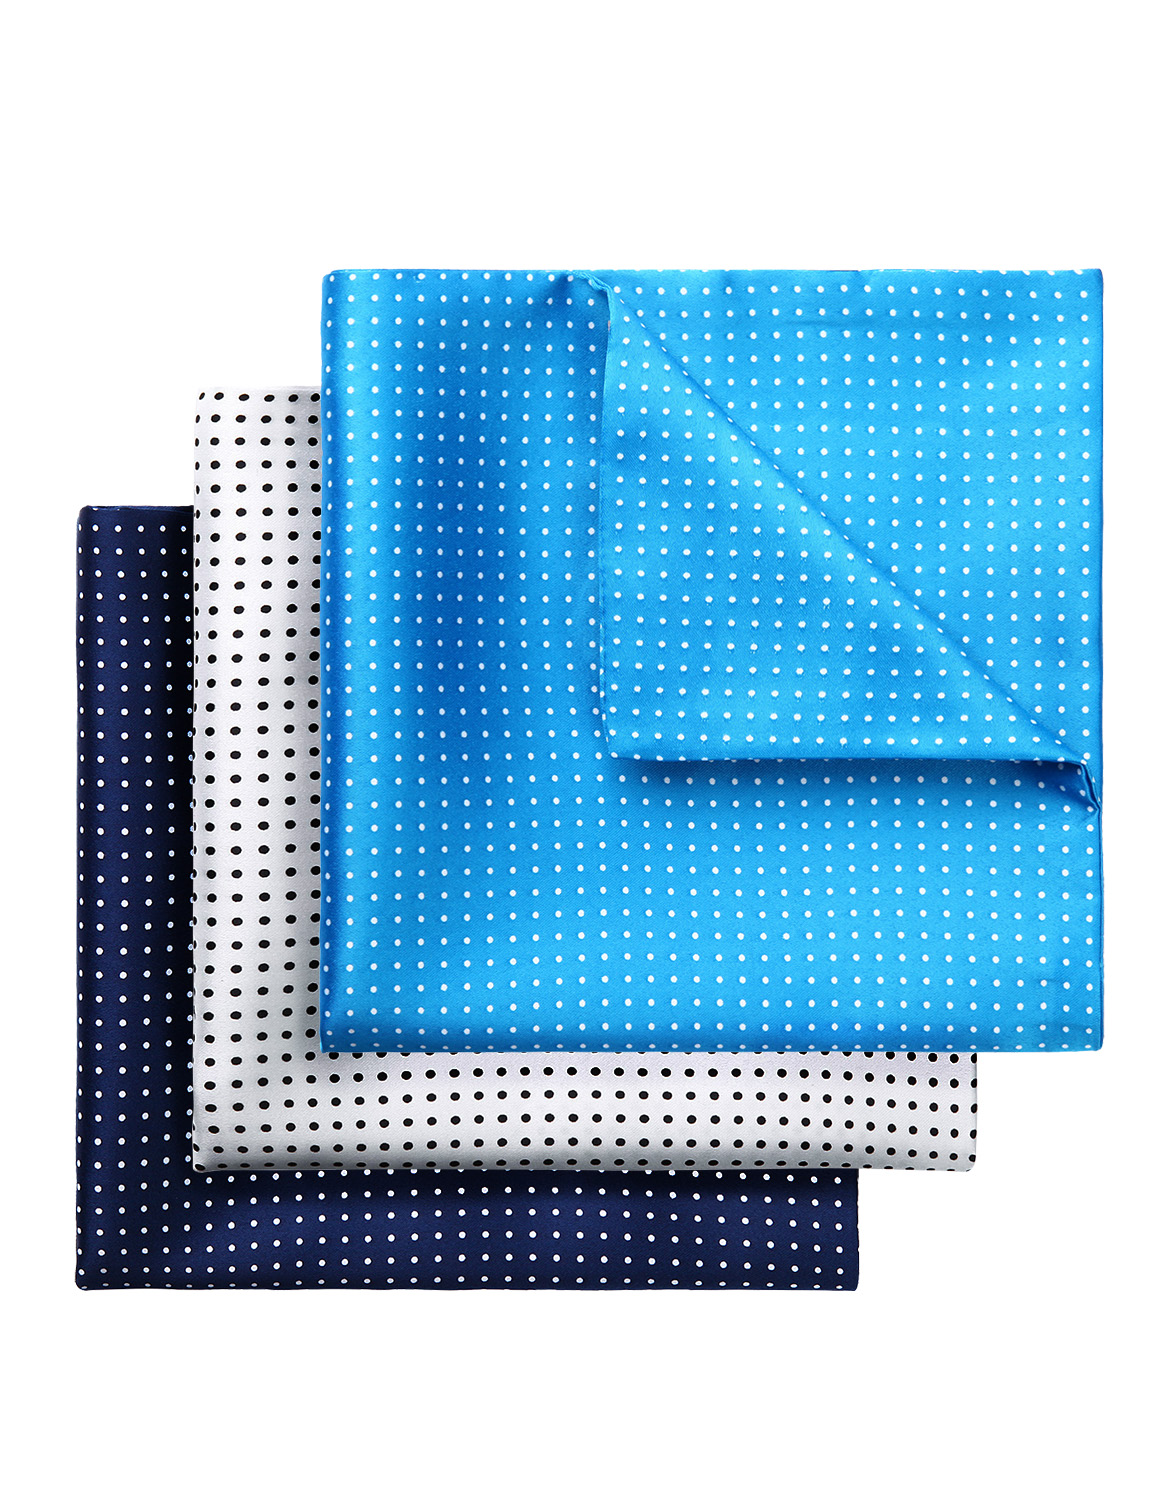 3 Piece Assorted Polka Dot Printed Classic Double Sided Men Silk Party Weeding Handkerchief Pocket Square Hanky Set